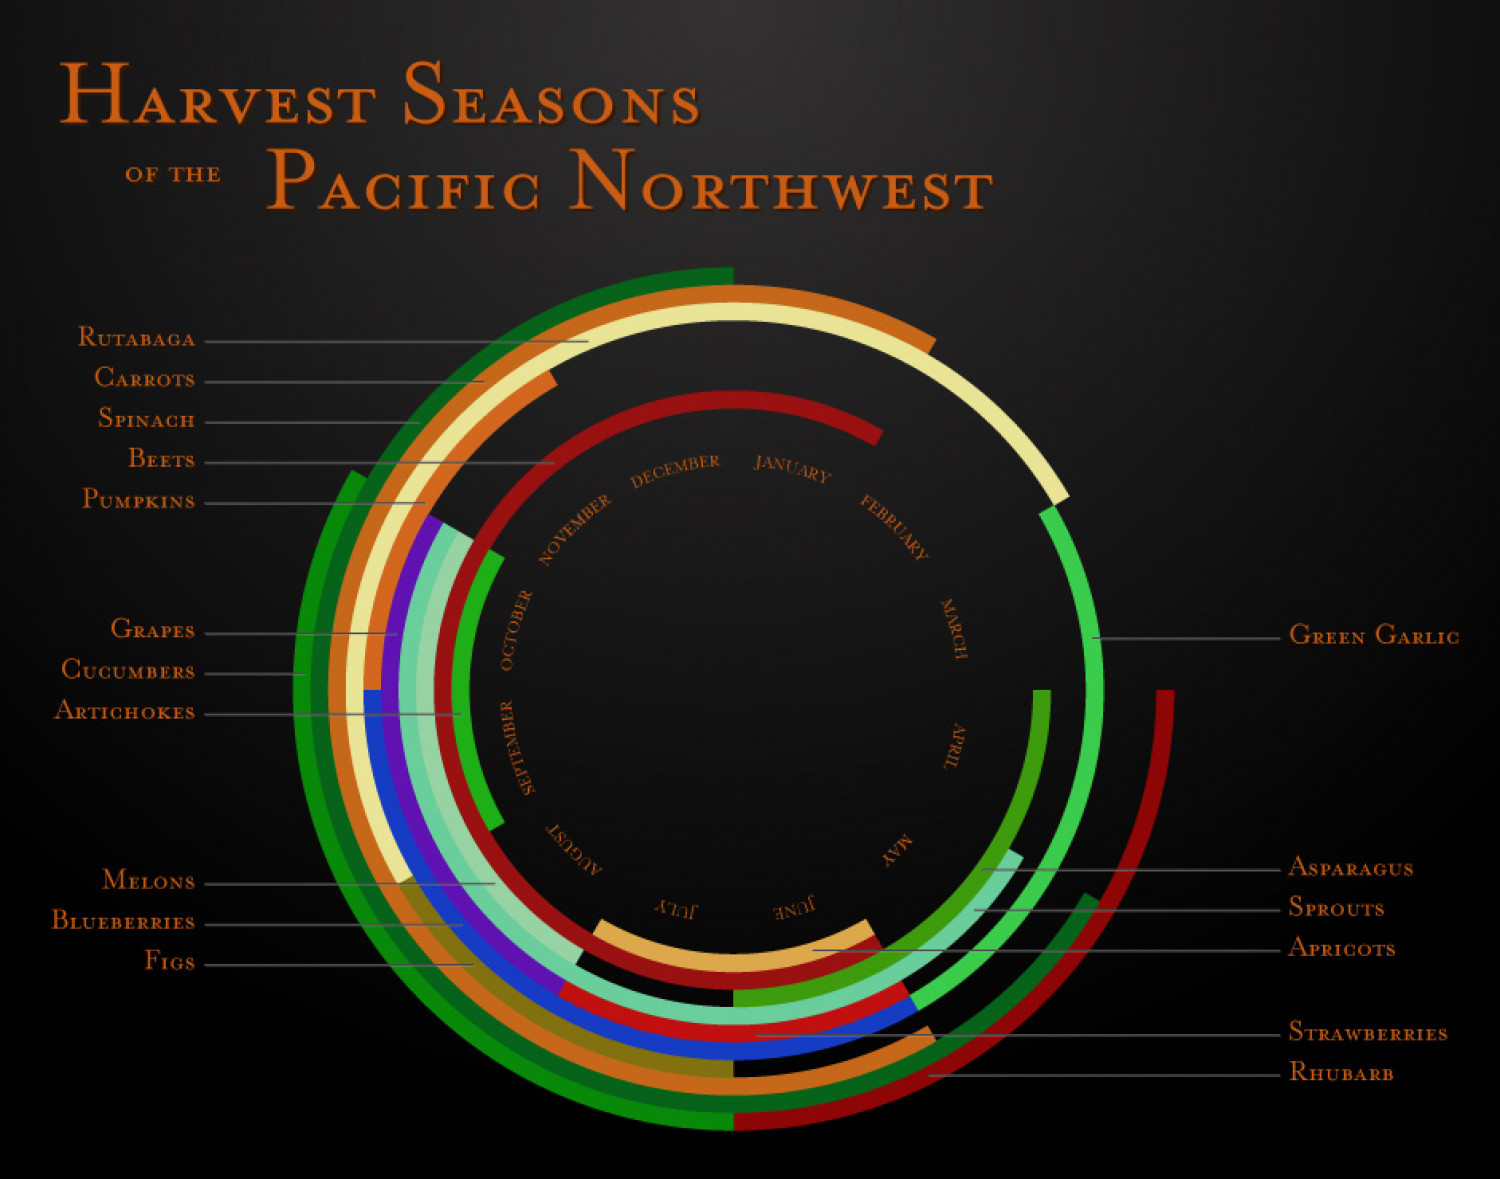 Harvest Seasons of the Pacific Northwest Infographic